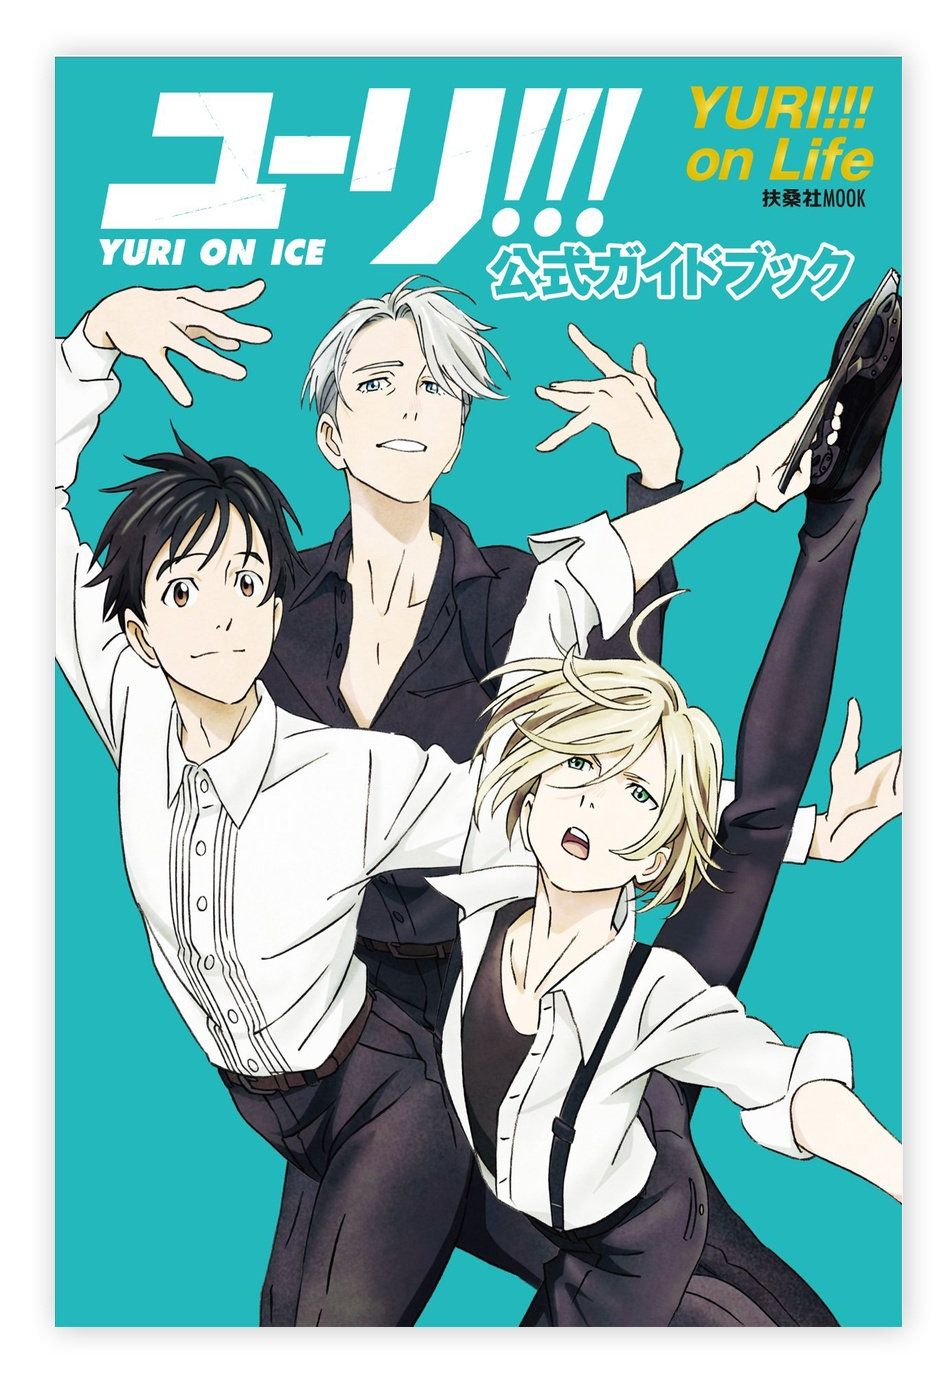 yuri on ice poster,TV anime poster,Canvas poster